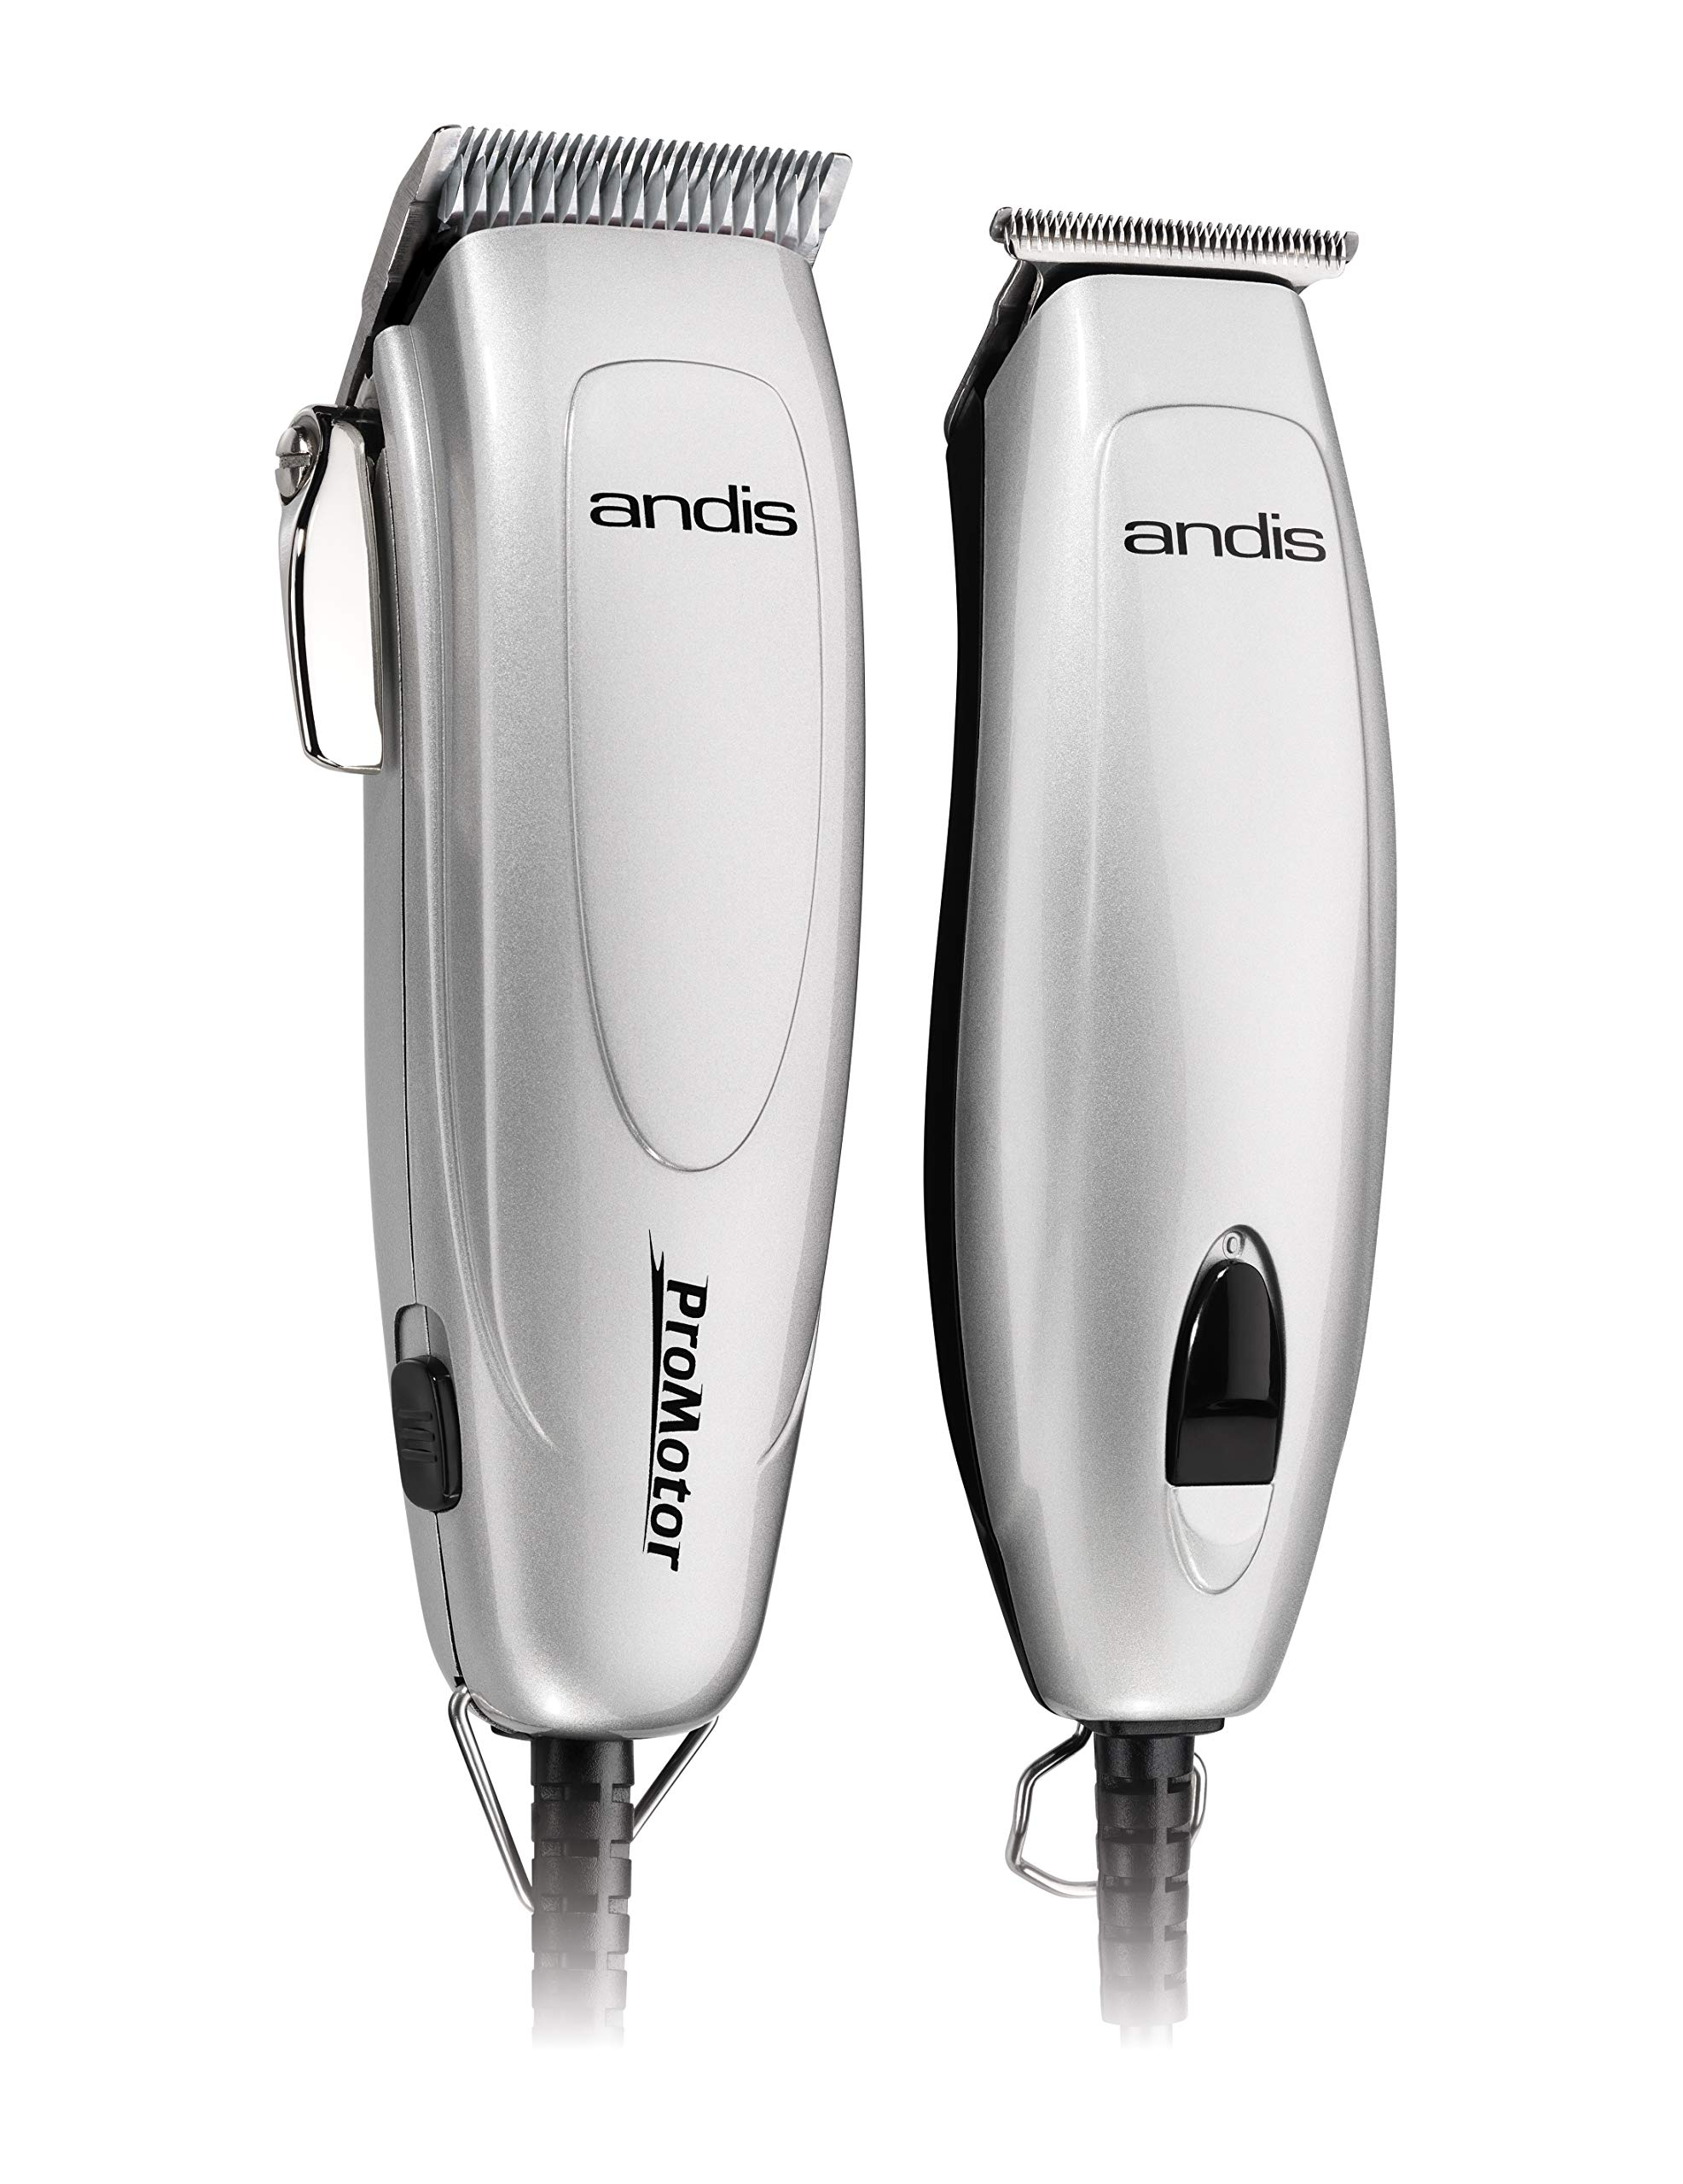 Andis Promotor+ Combo 27-Piece Haircutting Kit